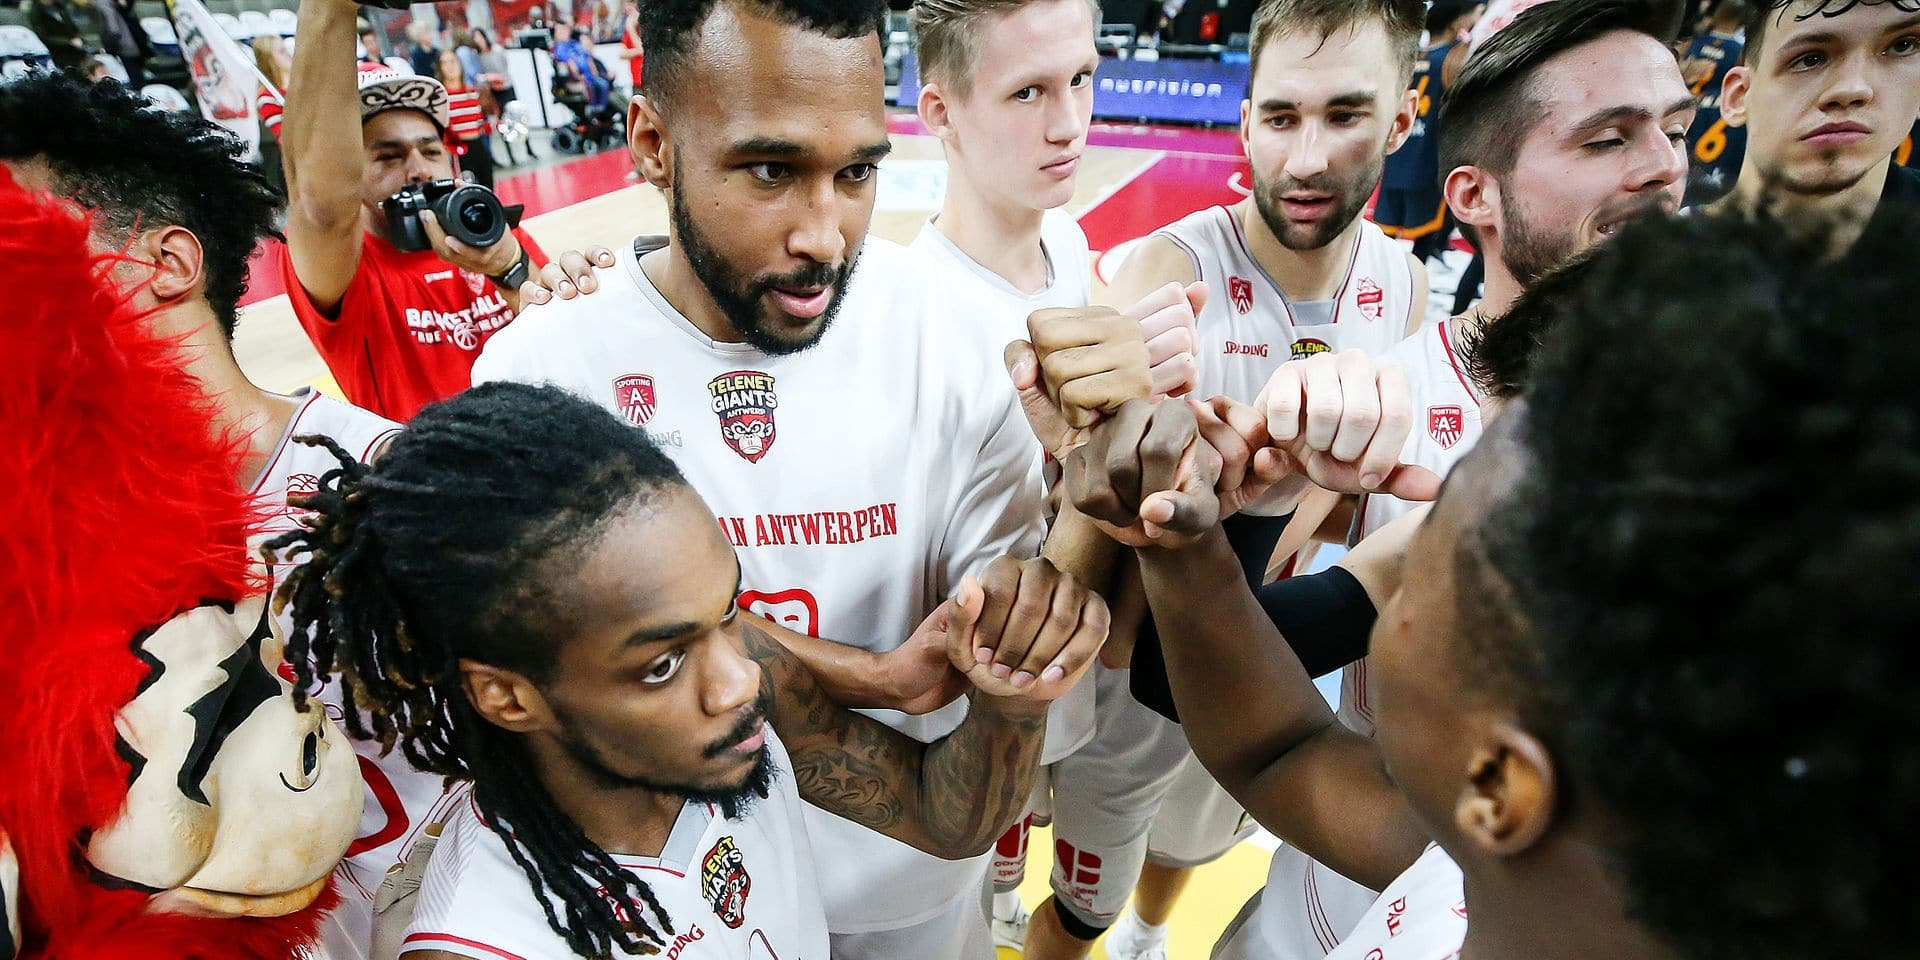 Players of Antwerp Giants celebrate after winning the basketball match between Antwerp Giants and Brussels, the first semi final of the Belgian Cup competition, Saturday 26 January 2019 in Antwerp. BELGA PHOTO DAVID PINTENS